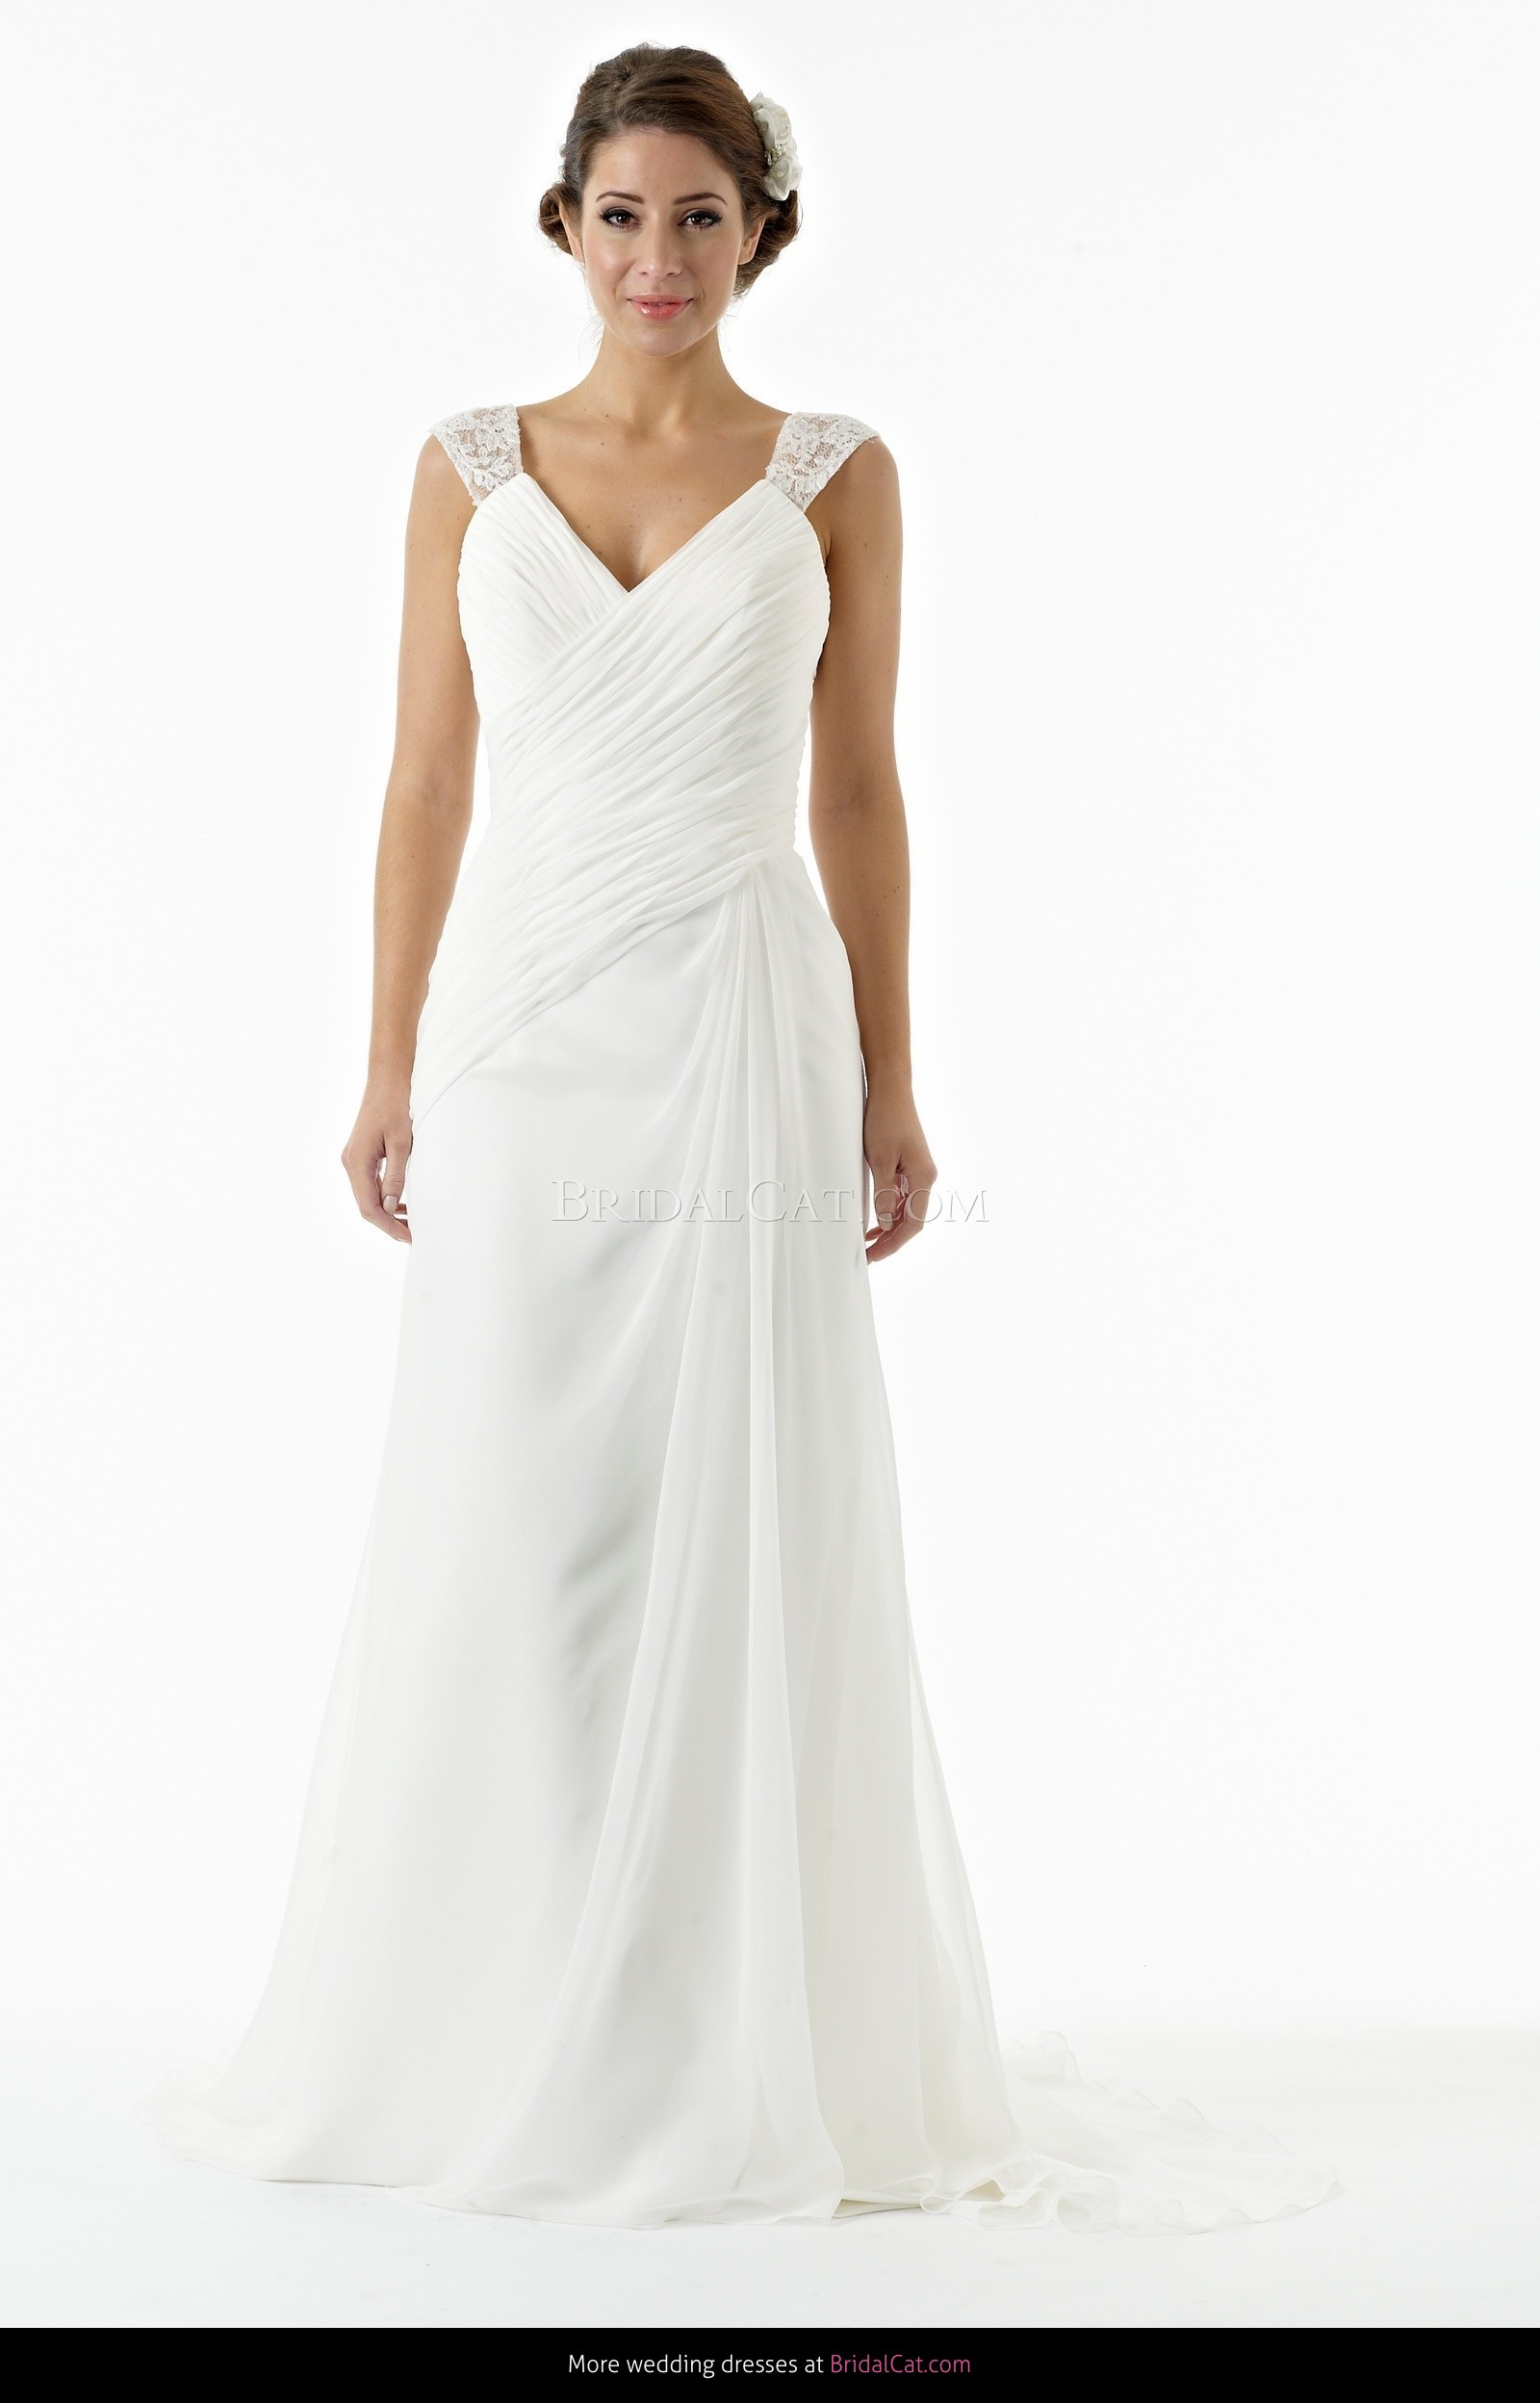 consignment shops that buy wedding dresses photo - 1